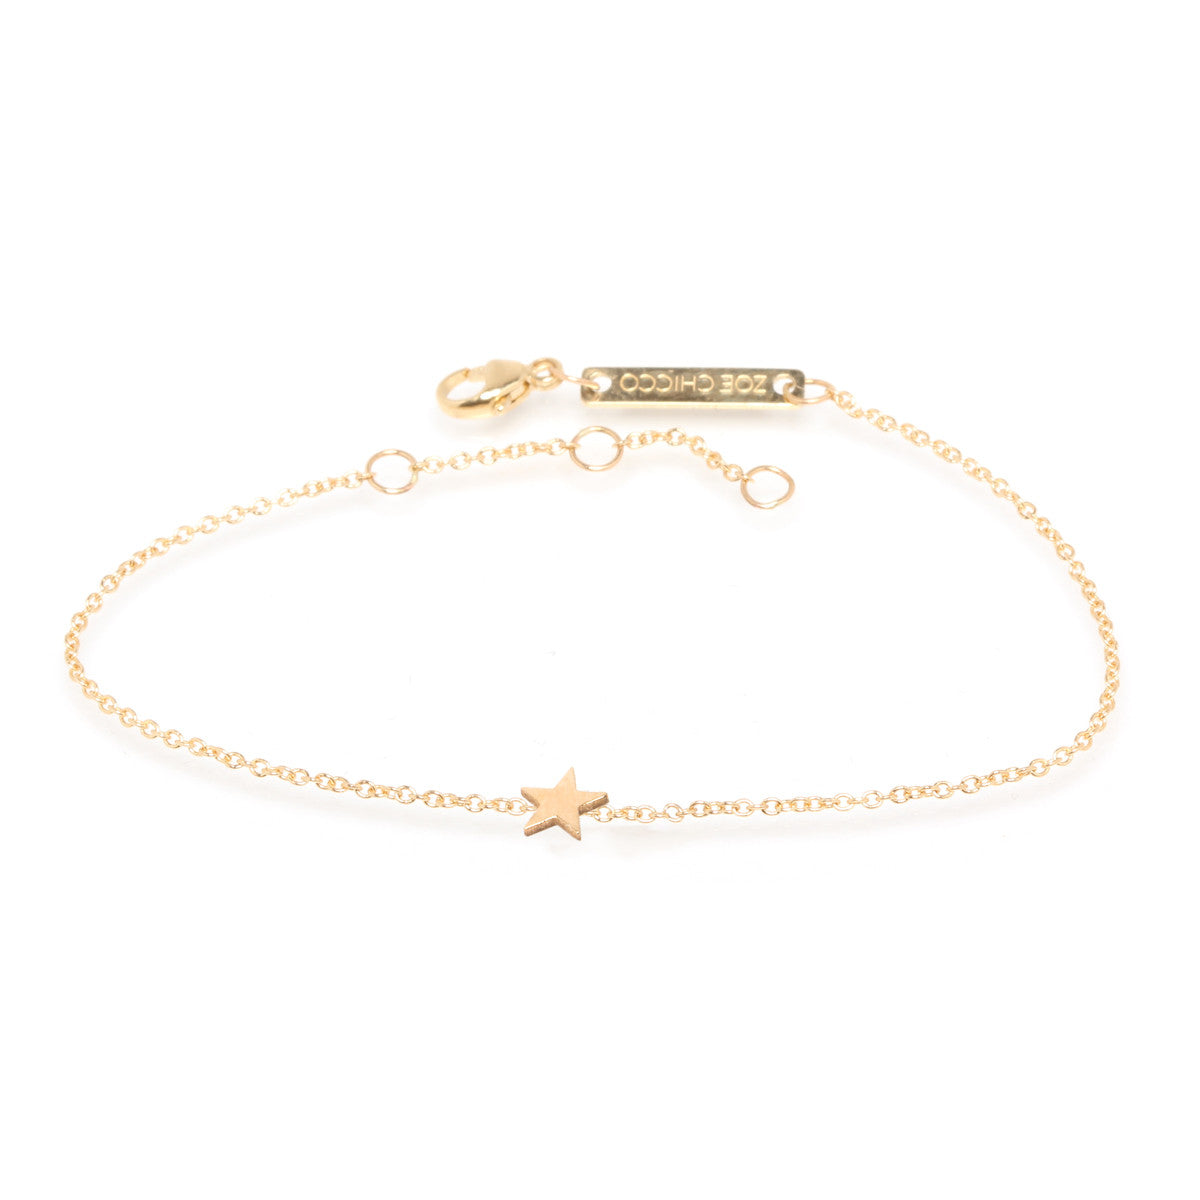 Zoë Chicco 14kt Yellow Gold Itty Bitty Star Bracelet